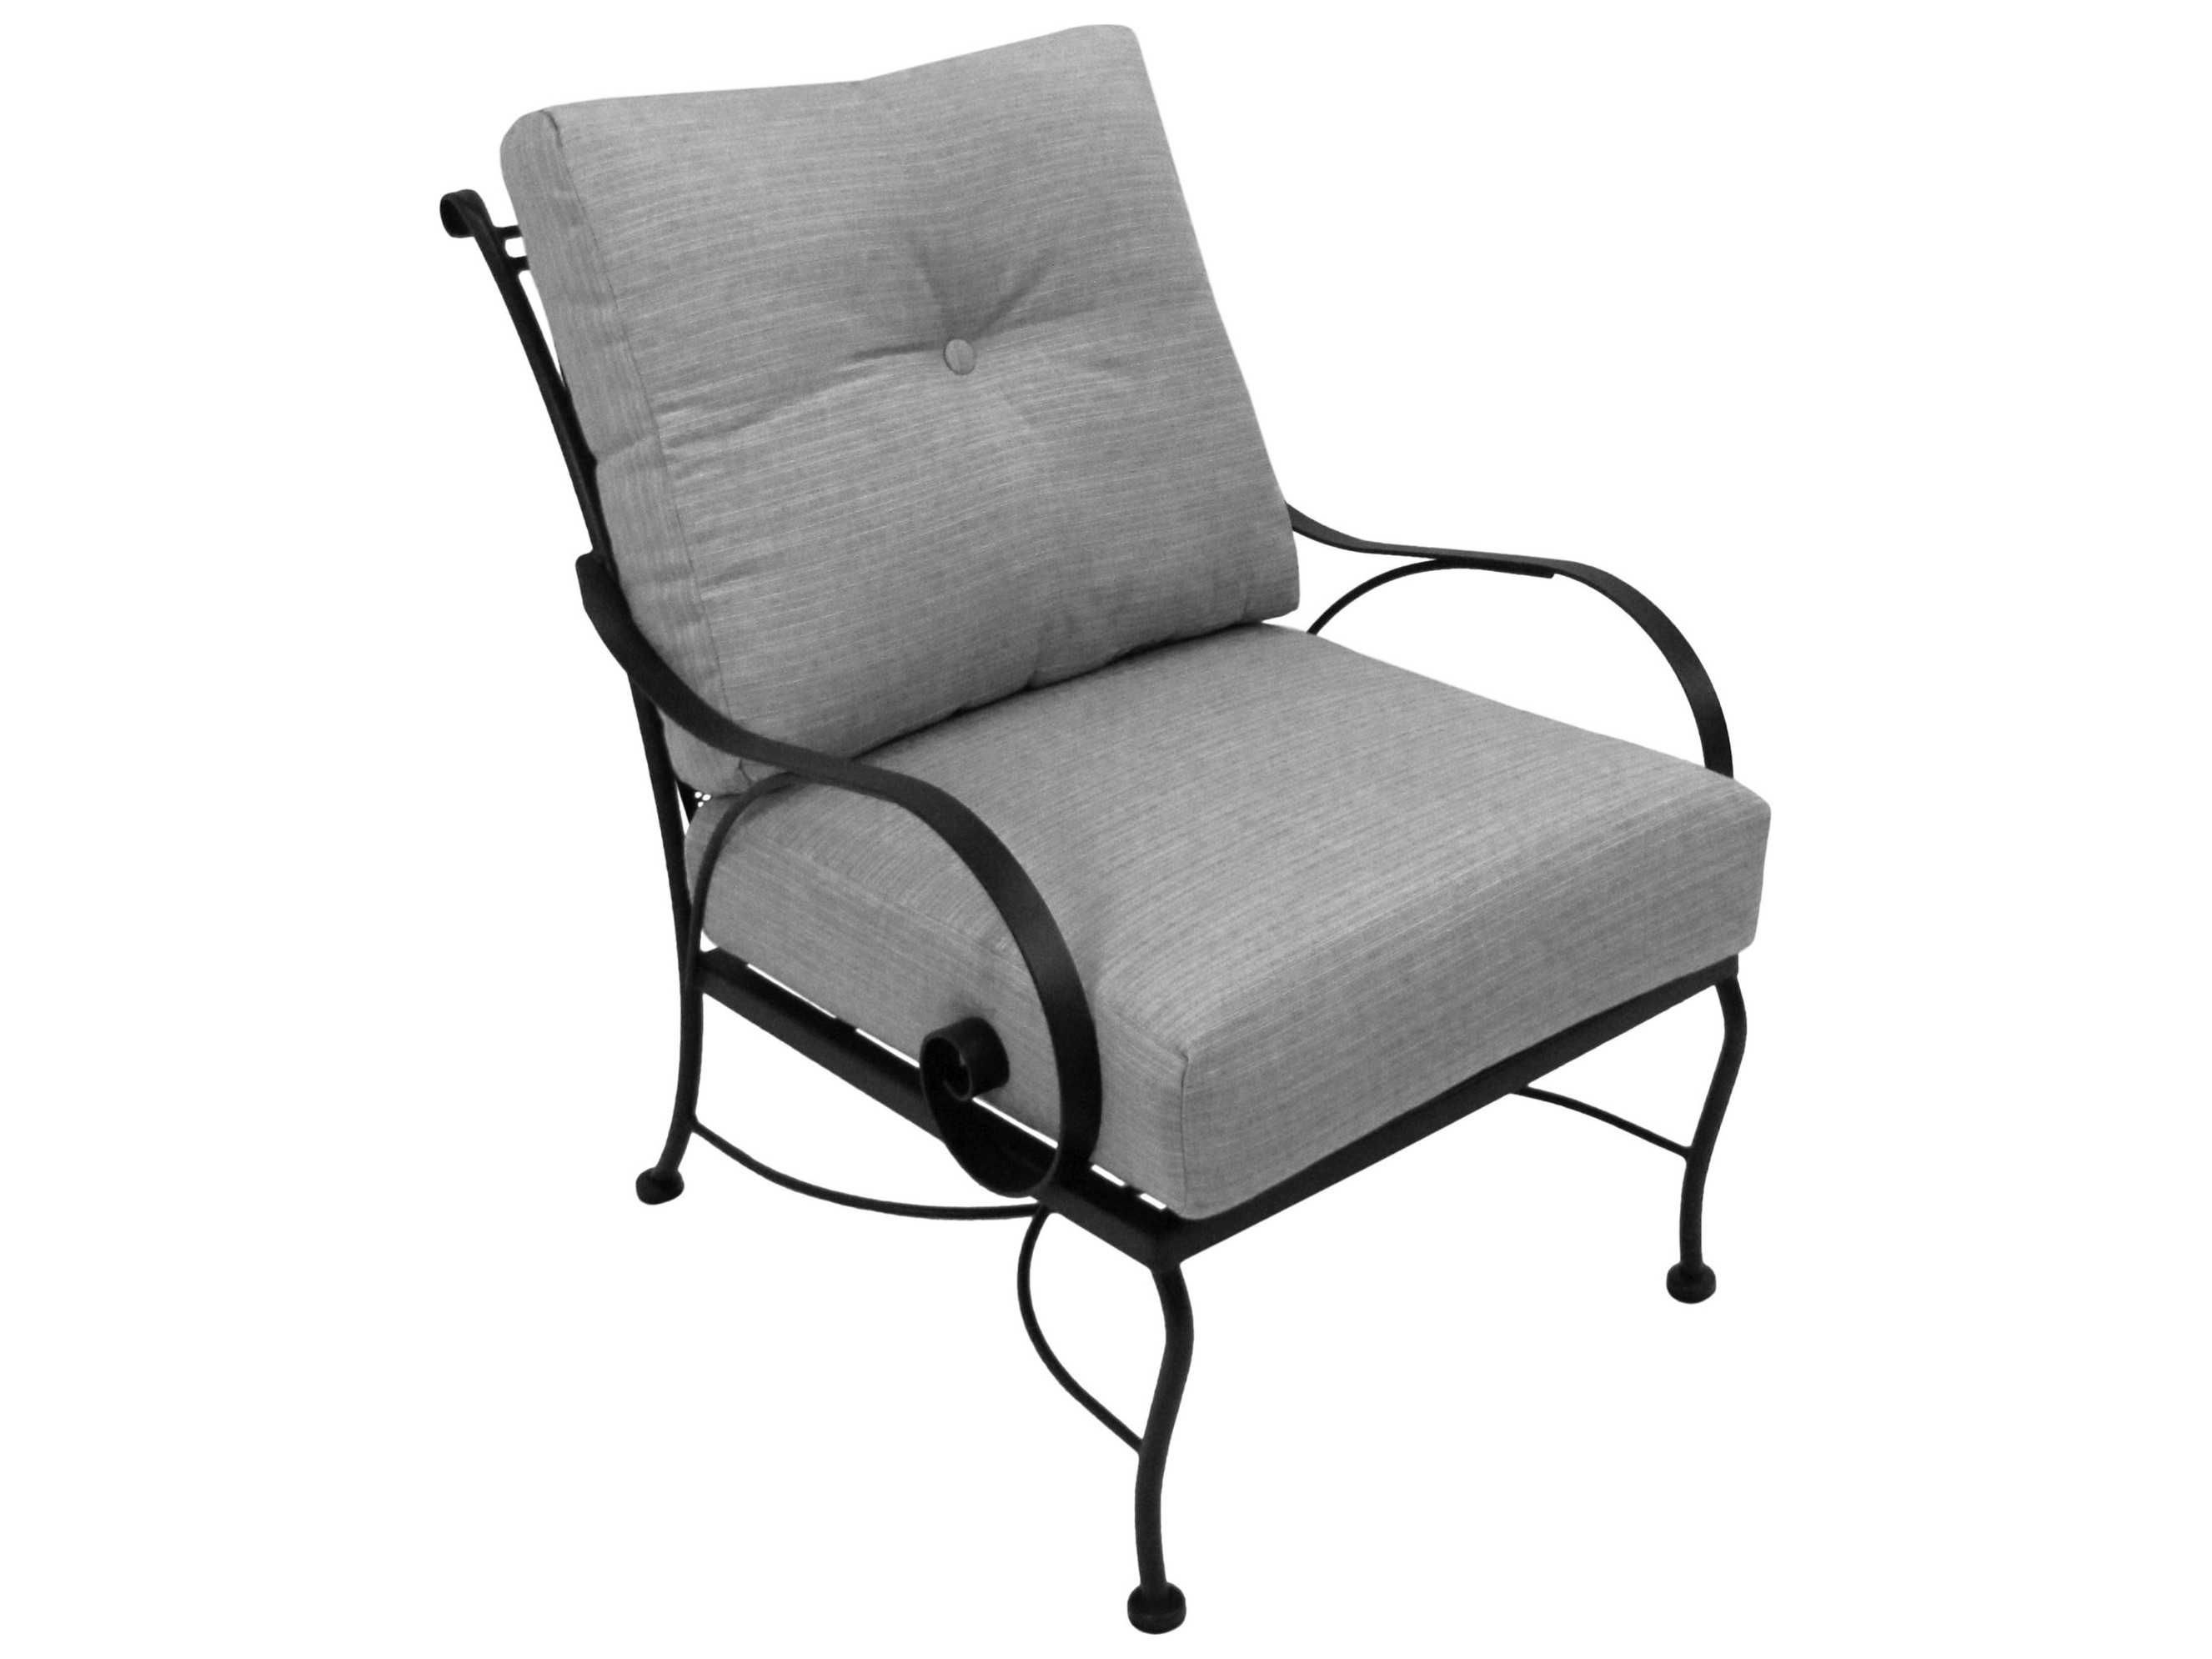 Meadowcraft Monticello Lounge Chair Replacement Cushions